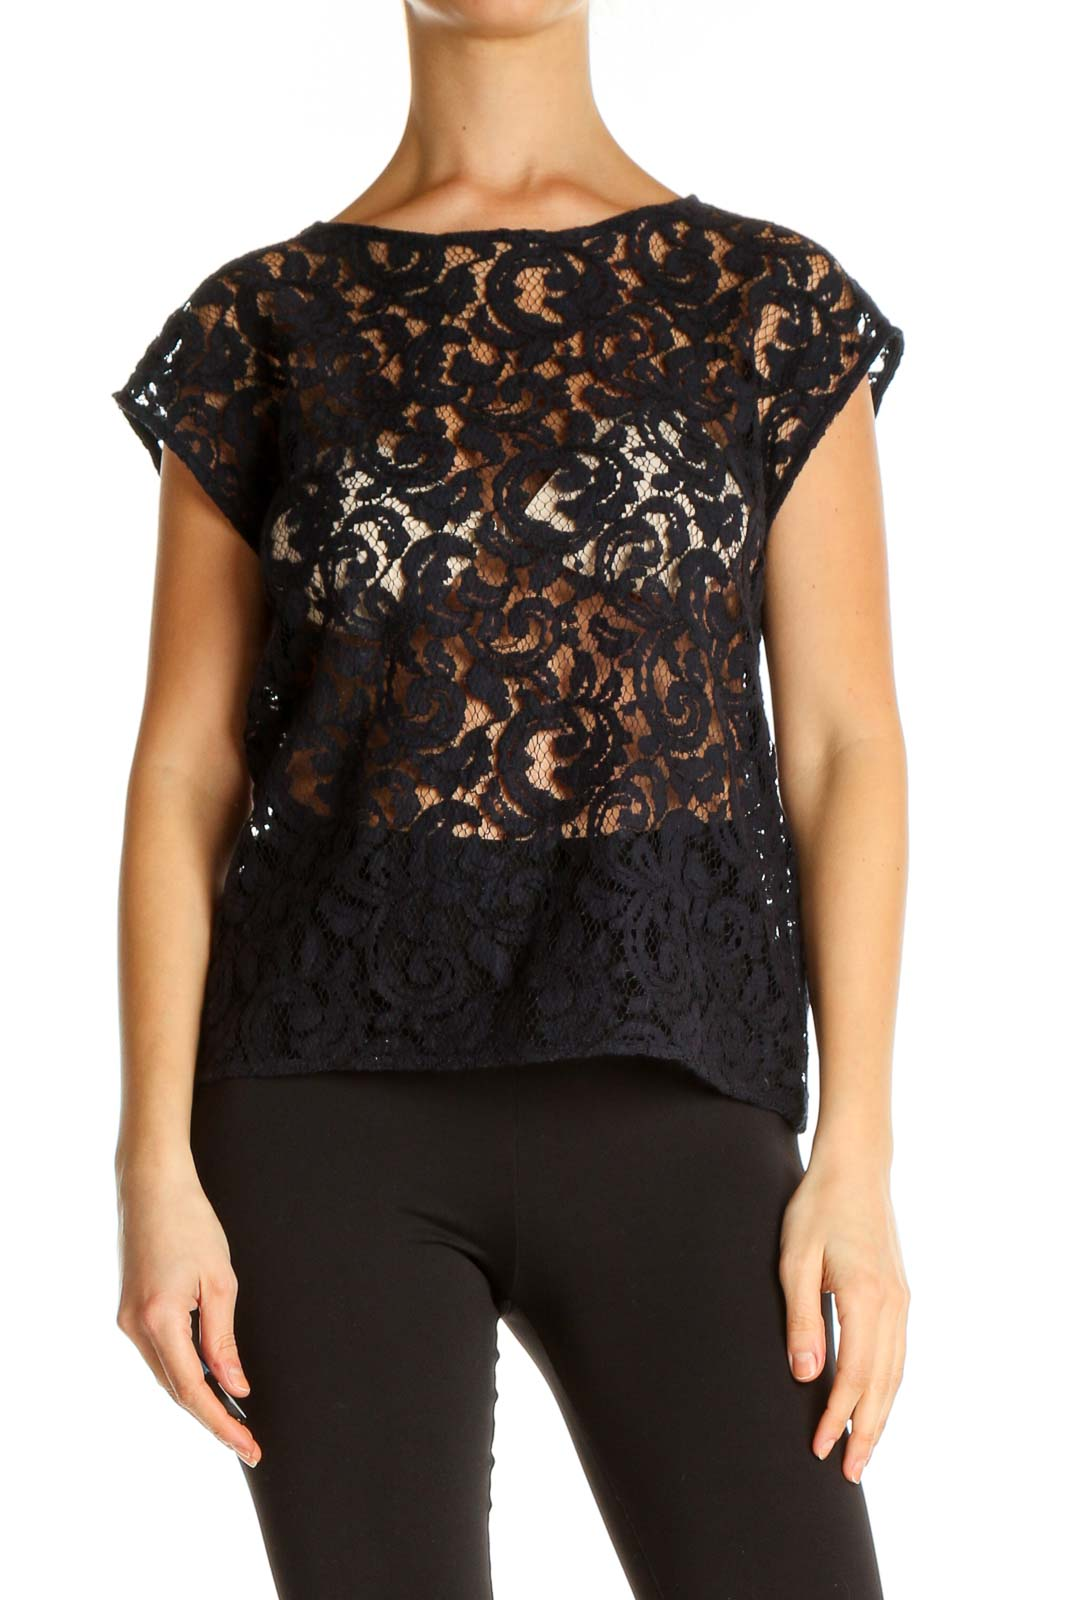 Bue Lace All Day Wear Blouse Front